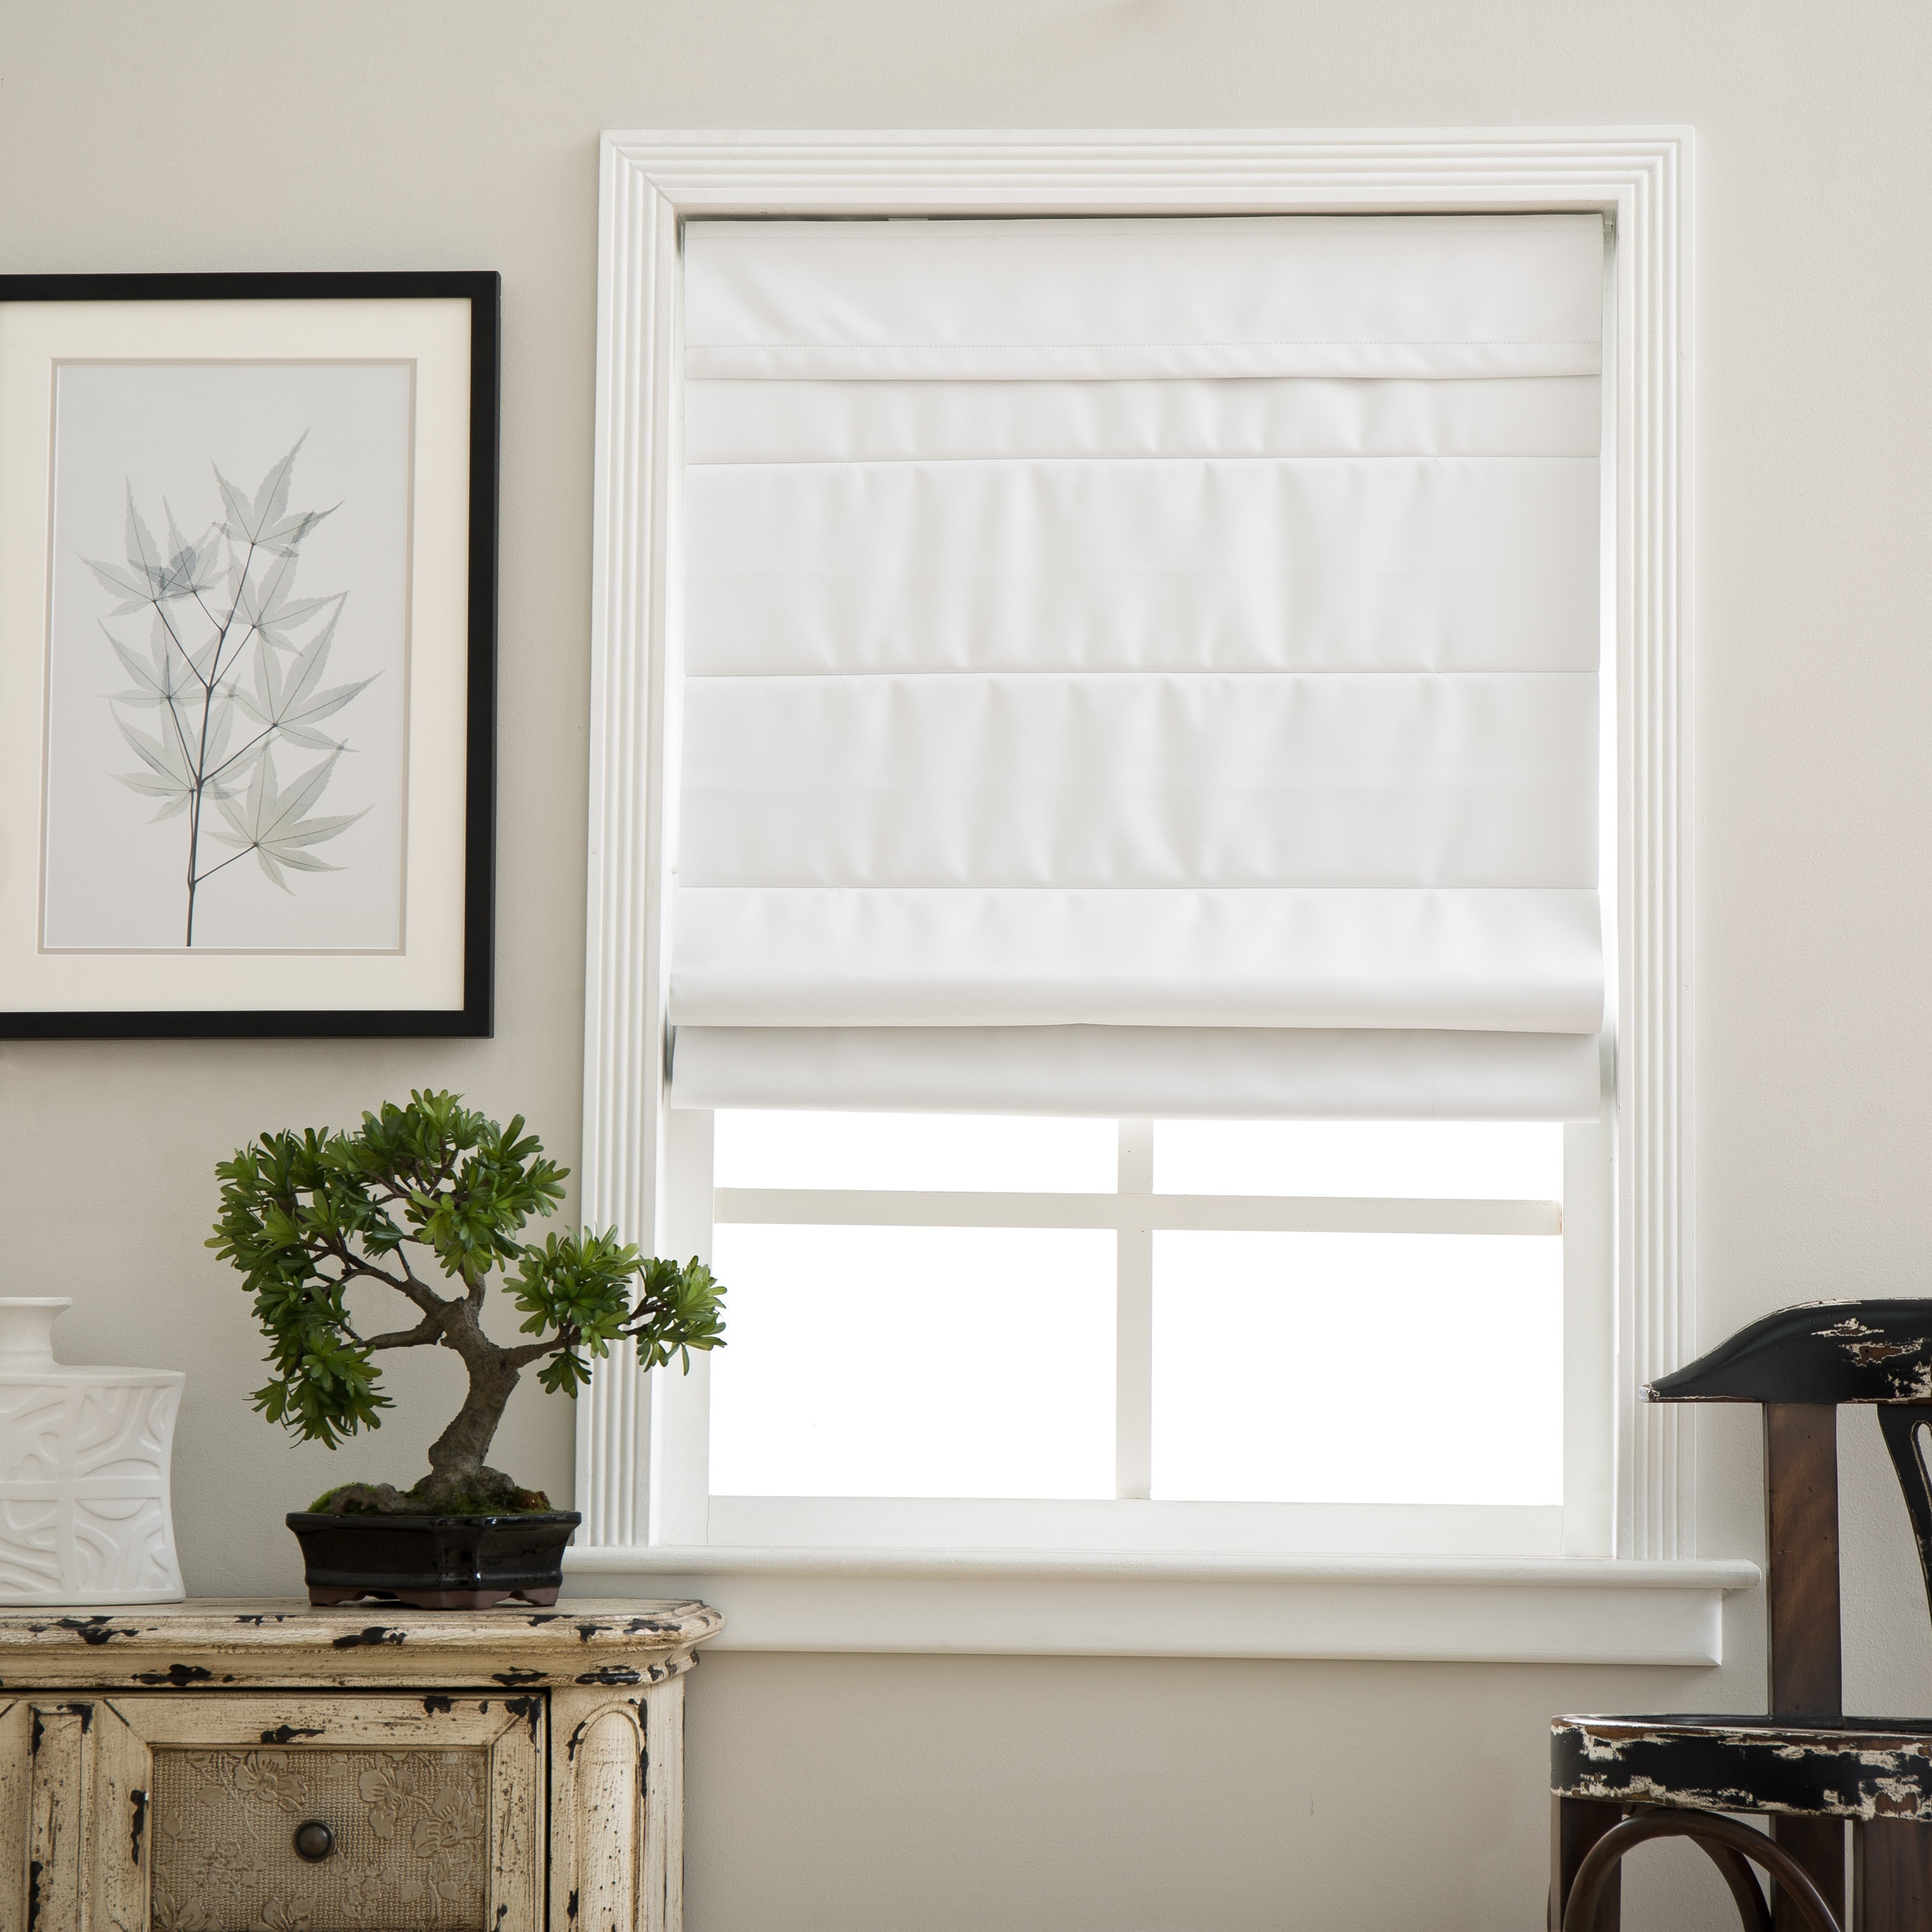 Shop arlo blinds cloud white cordless lift fabric roman room darkening shades on sale free shipping today overstock com 10532624